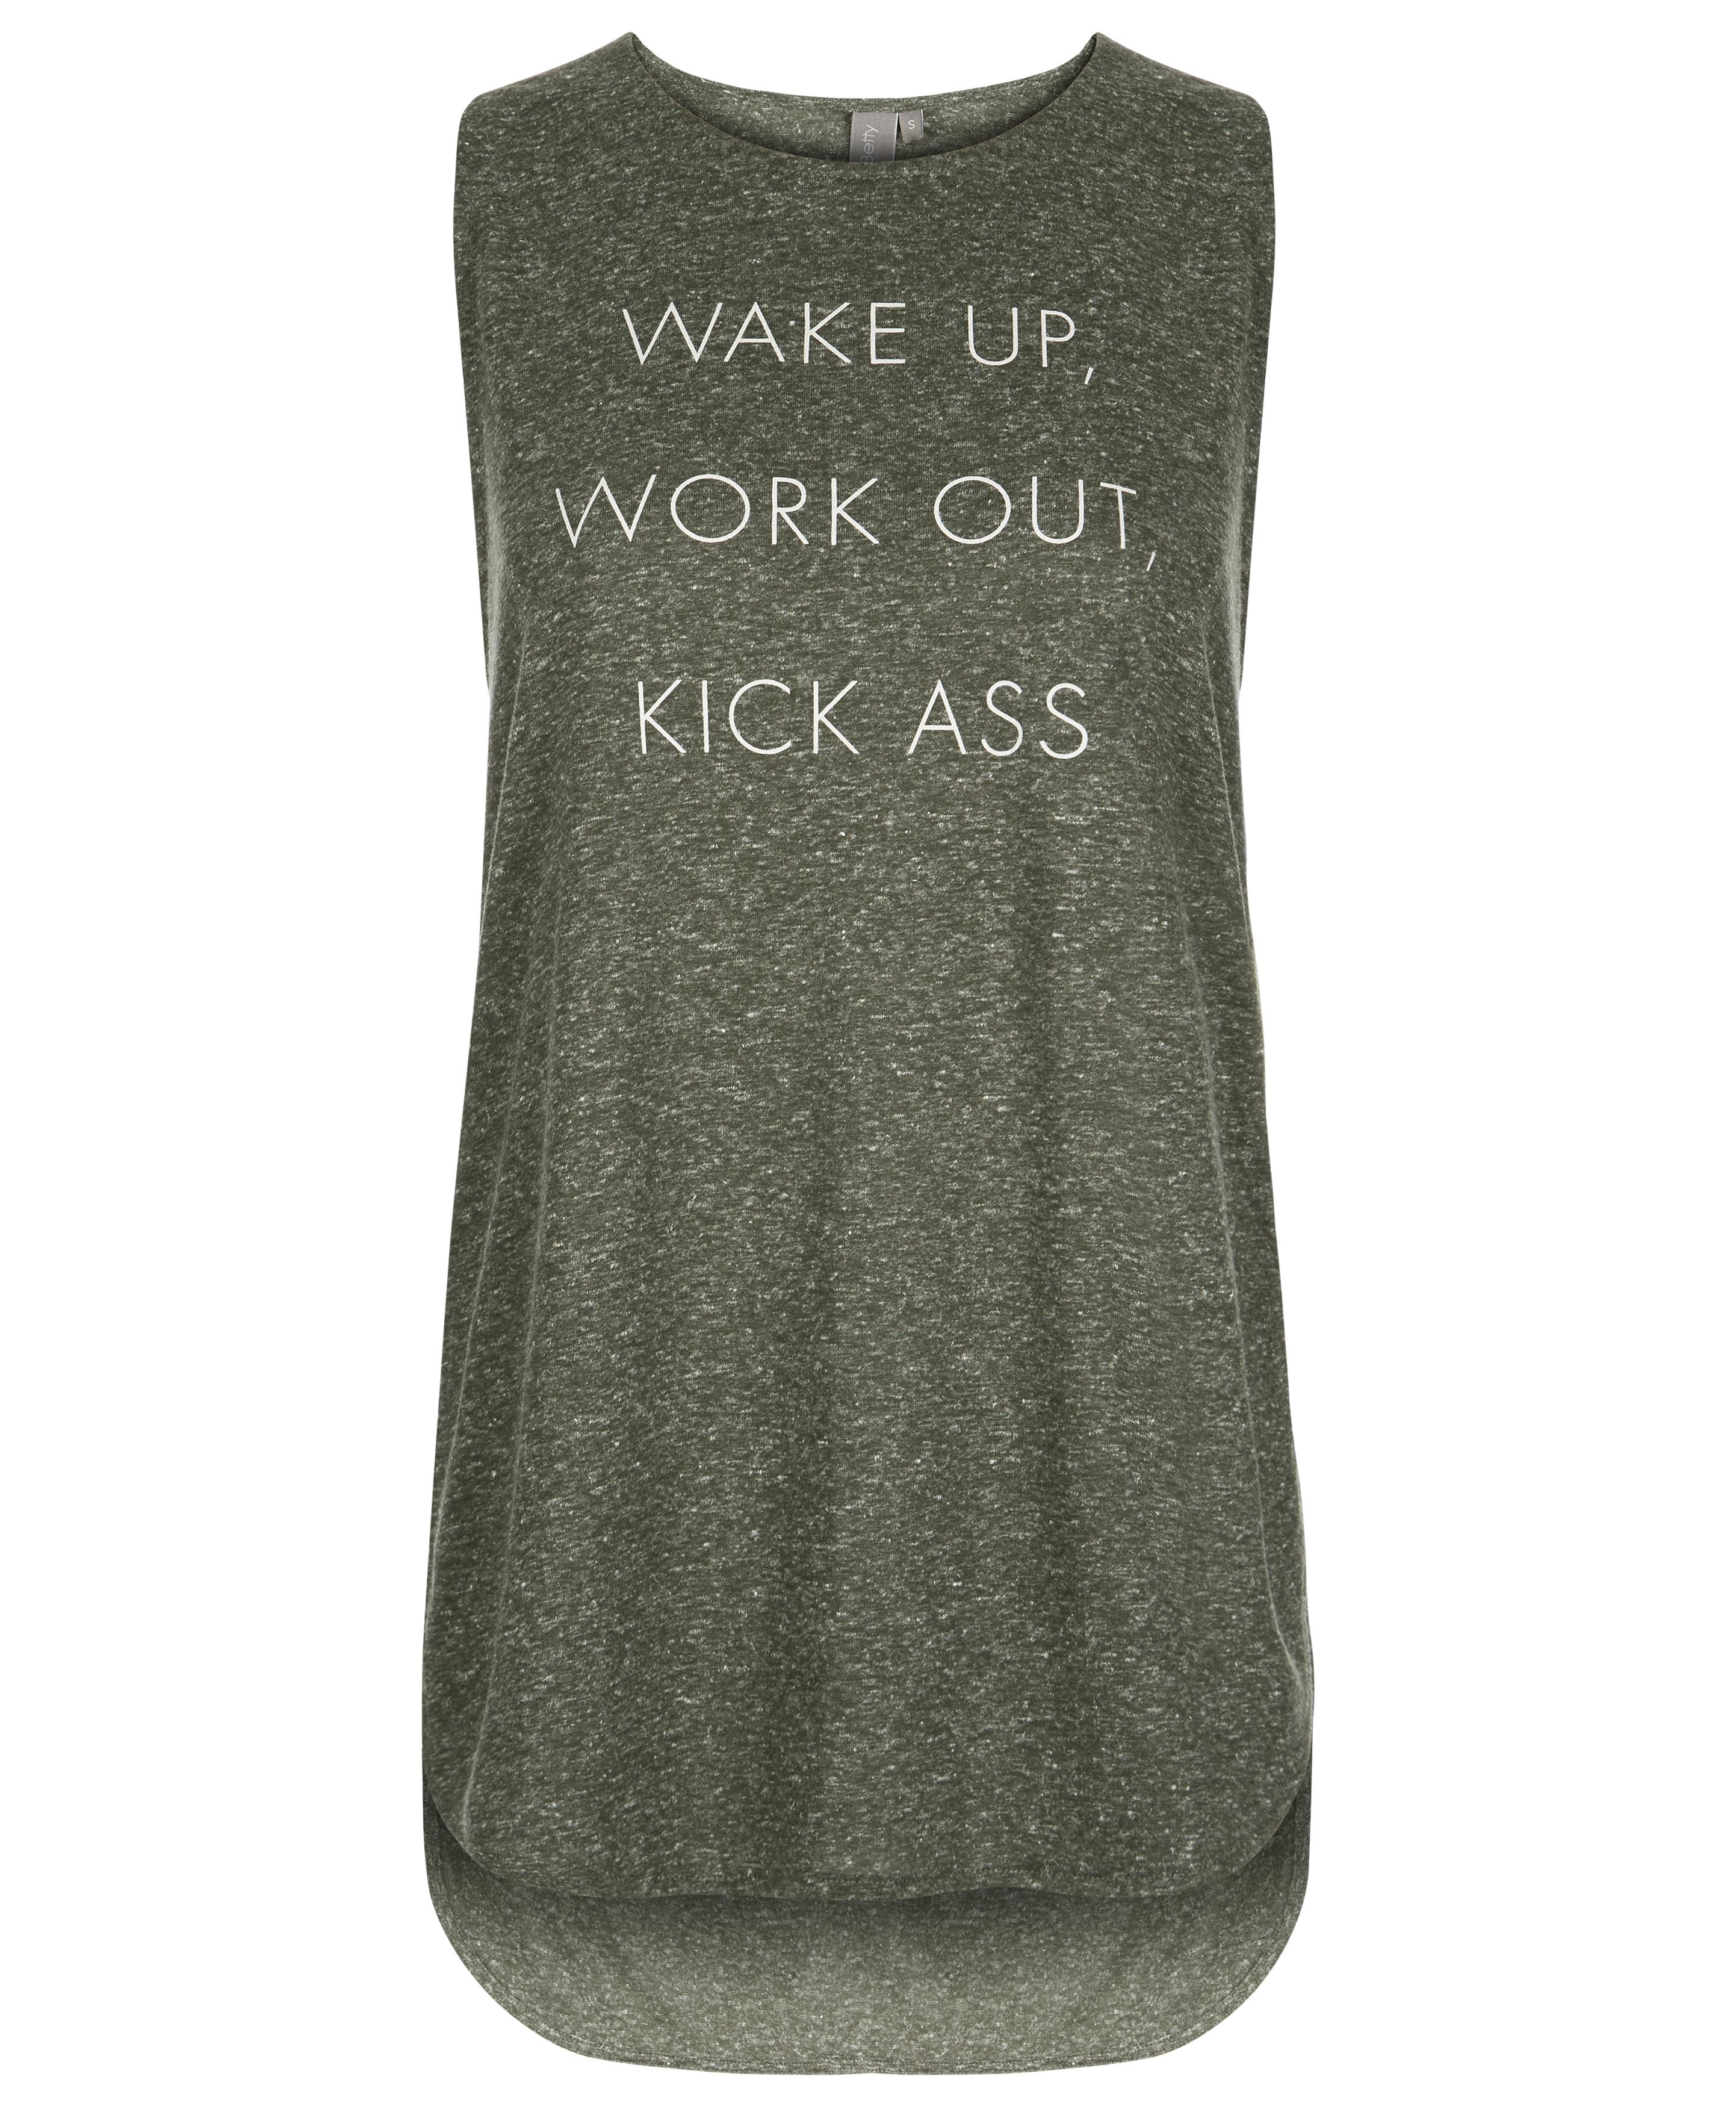 Sweaty Betty Flaunt It Tank // Price: $50 // (Image: Sweaty Betty)<p></p>